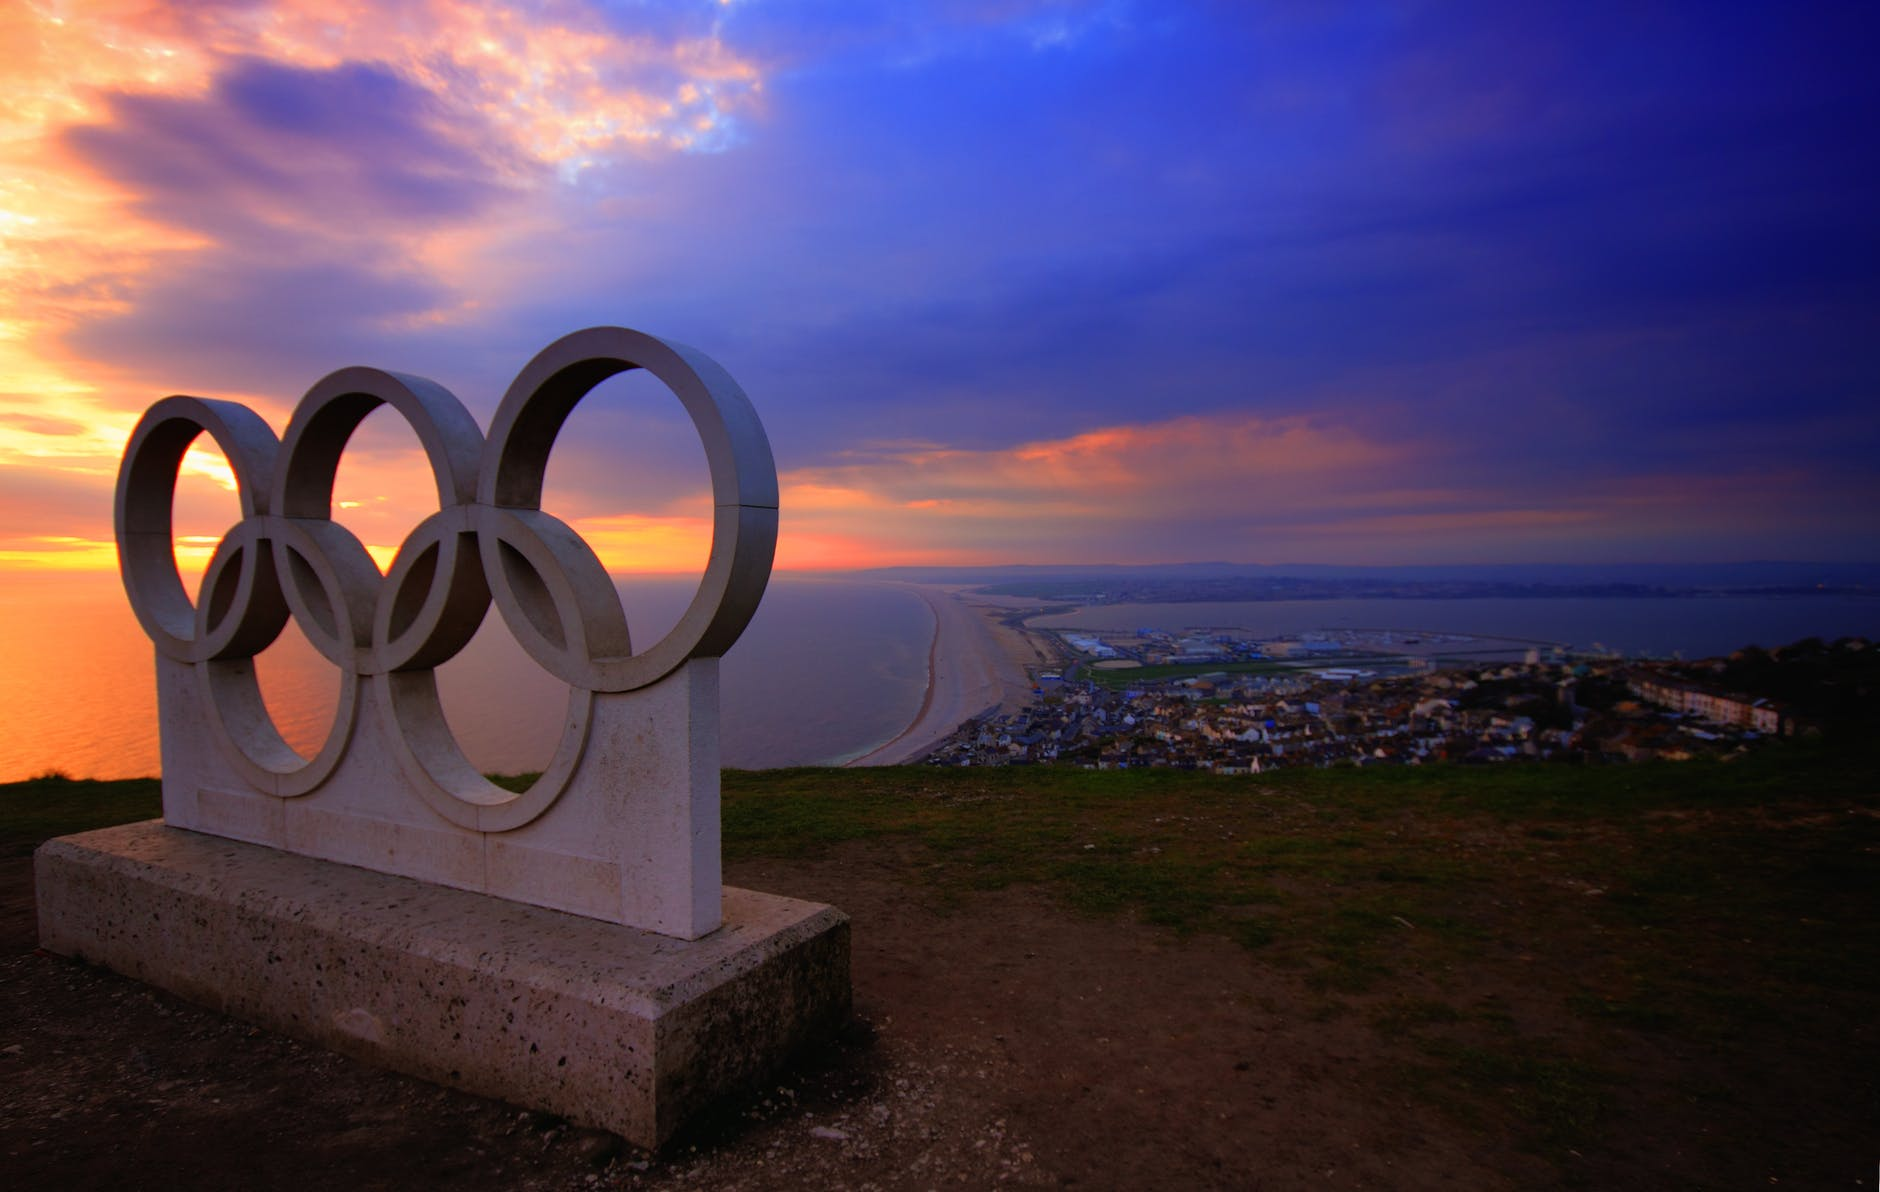 Image of the five olympic rings with a sunset in the background.